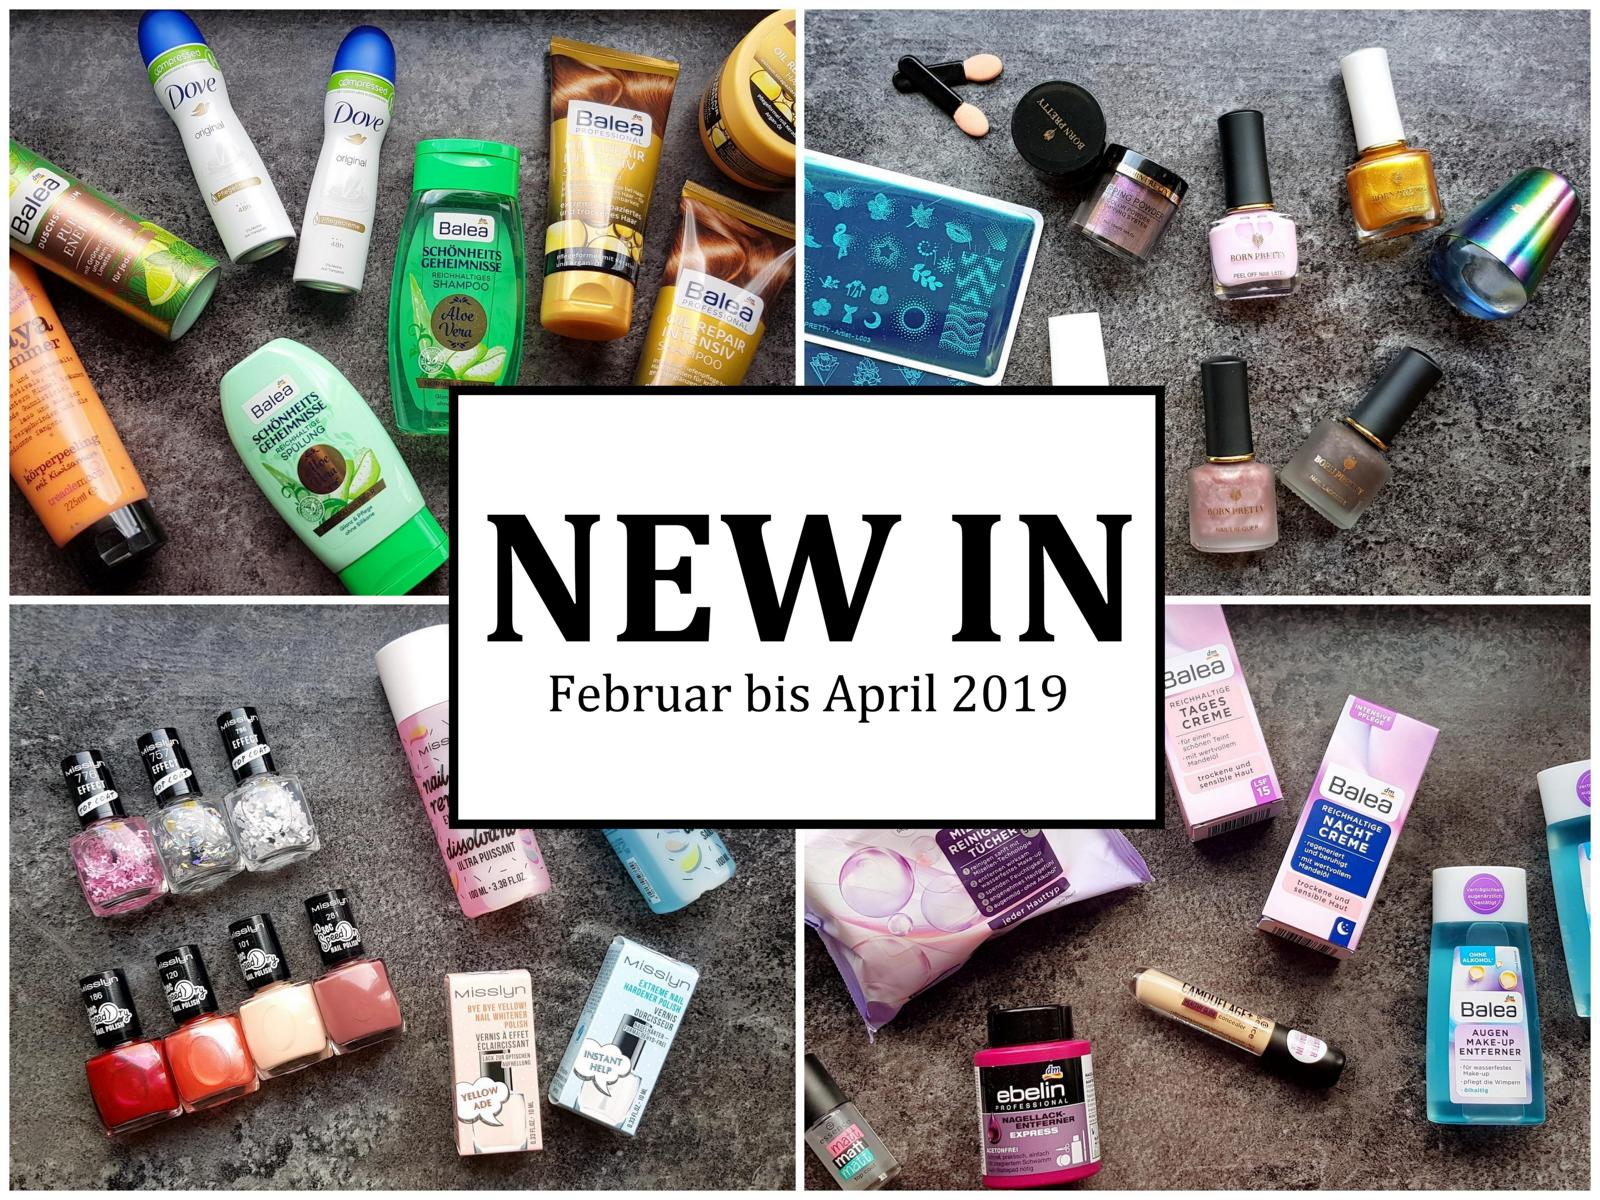 New In Februar bis April 2019